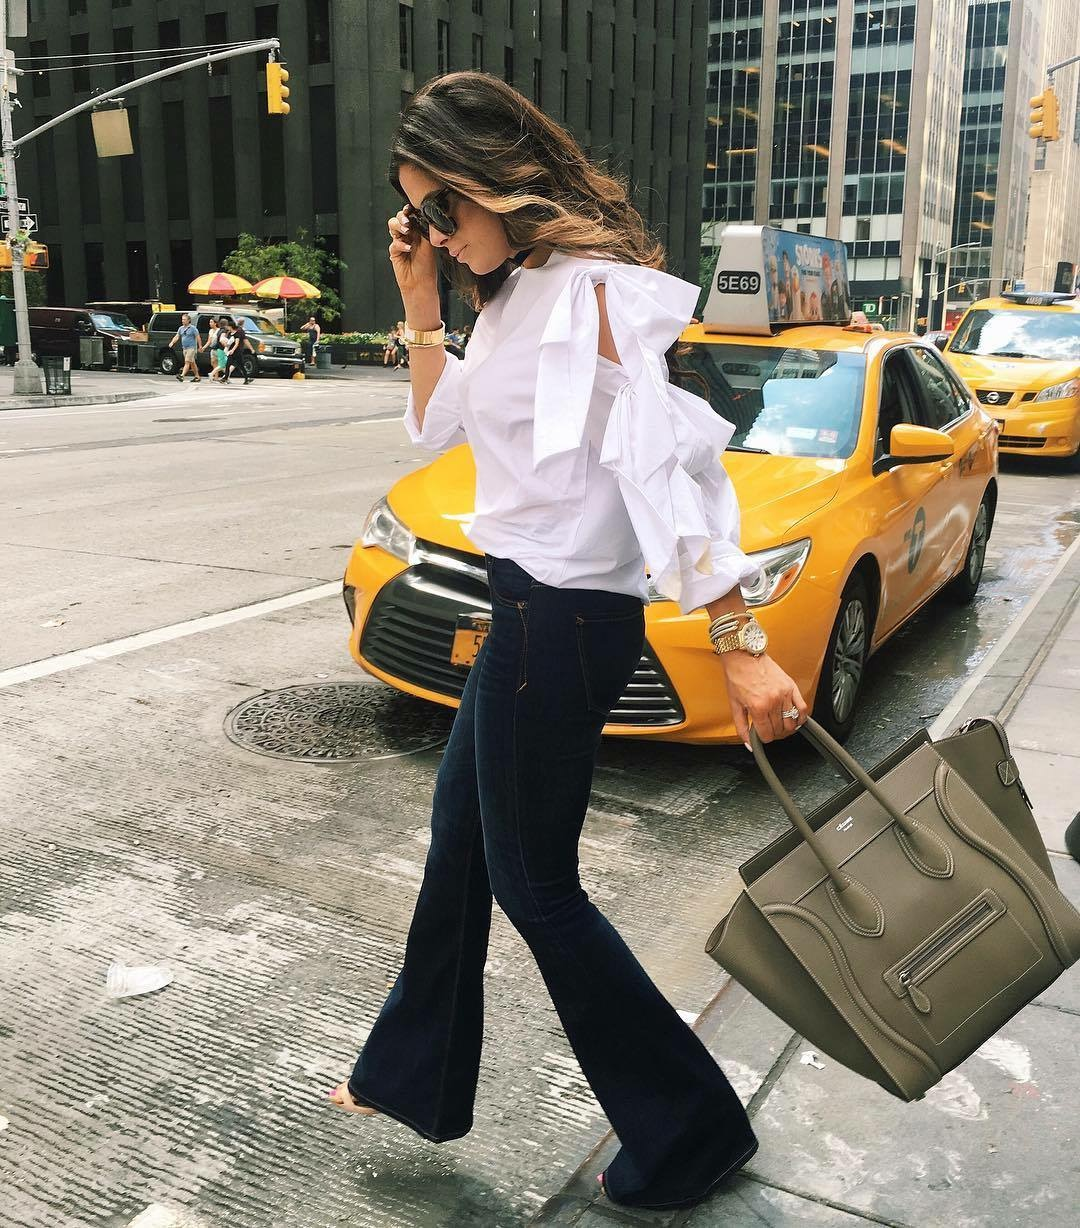 emily gemma, the sweetest thing blog, emily gemma fashion week, NYFW street style 2016, Storets bow top, express flared jeans review, how to style flare jeans, flare jeans outfit for fall, pinterest flare jeans